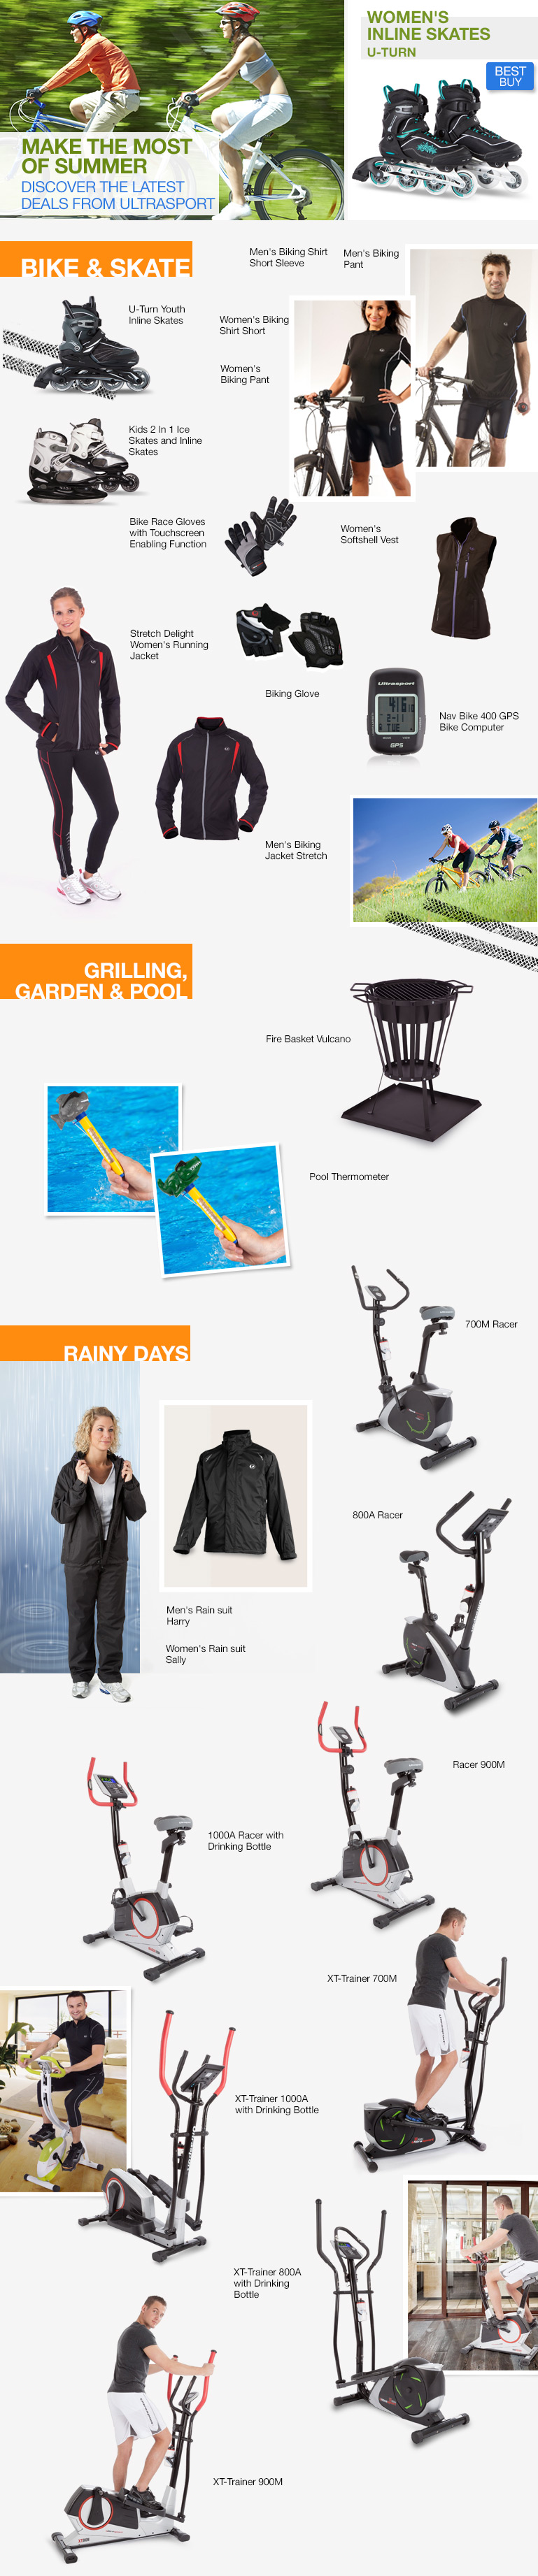 Latest Deals from Ultrasport